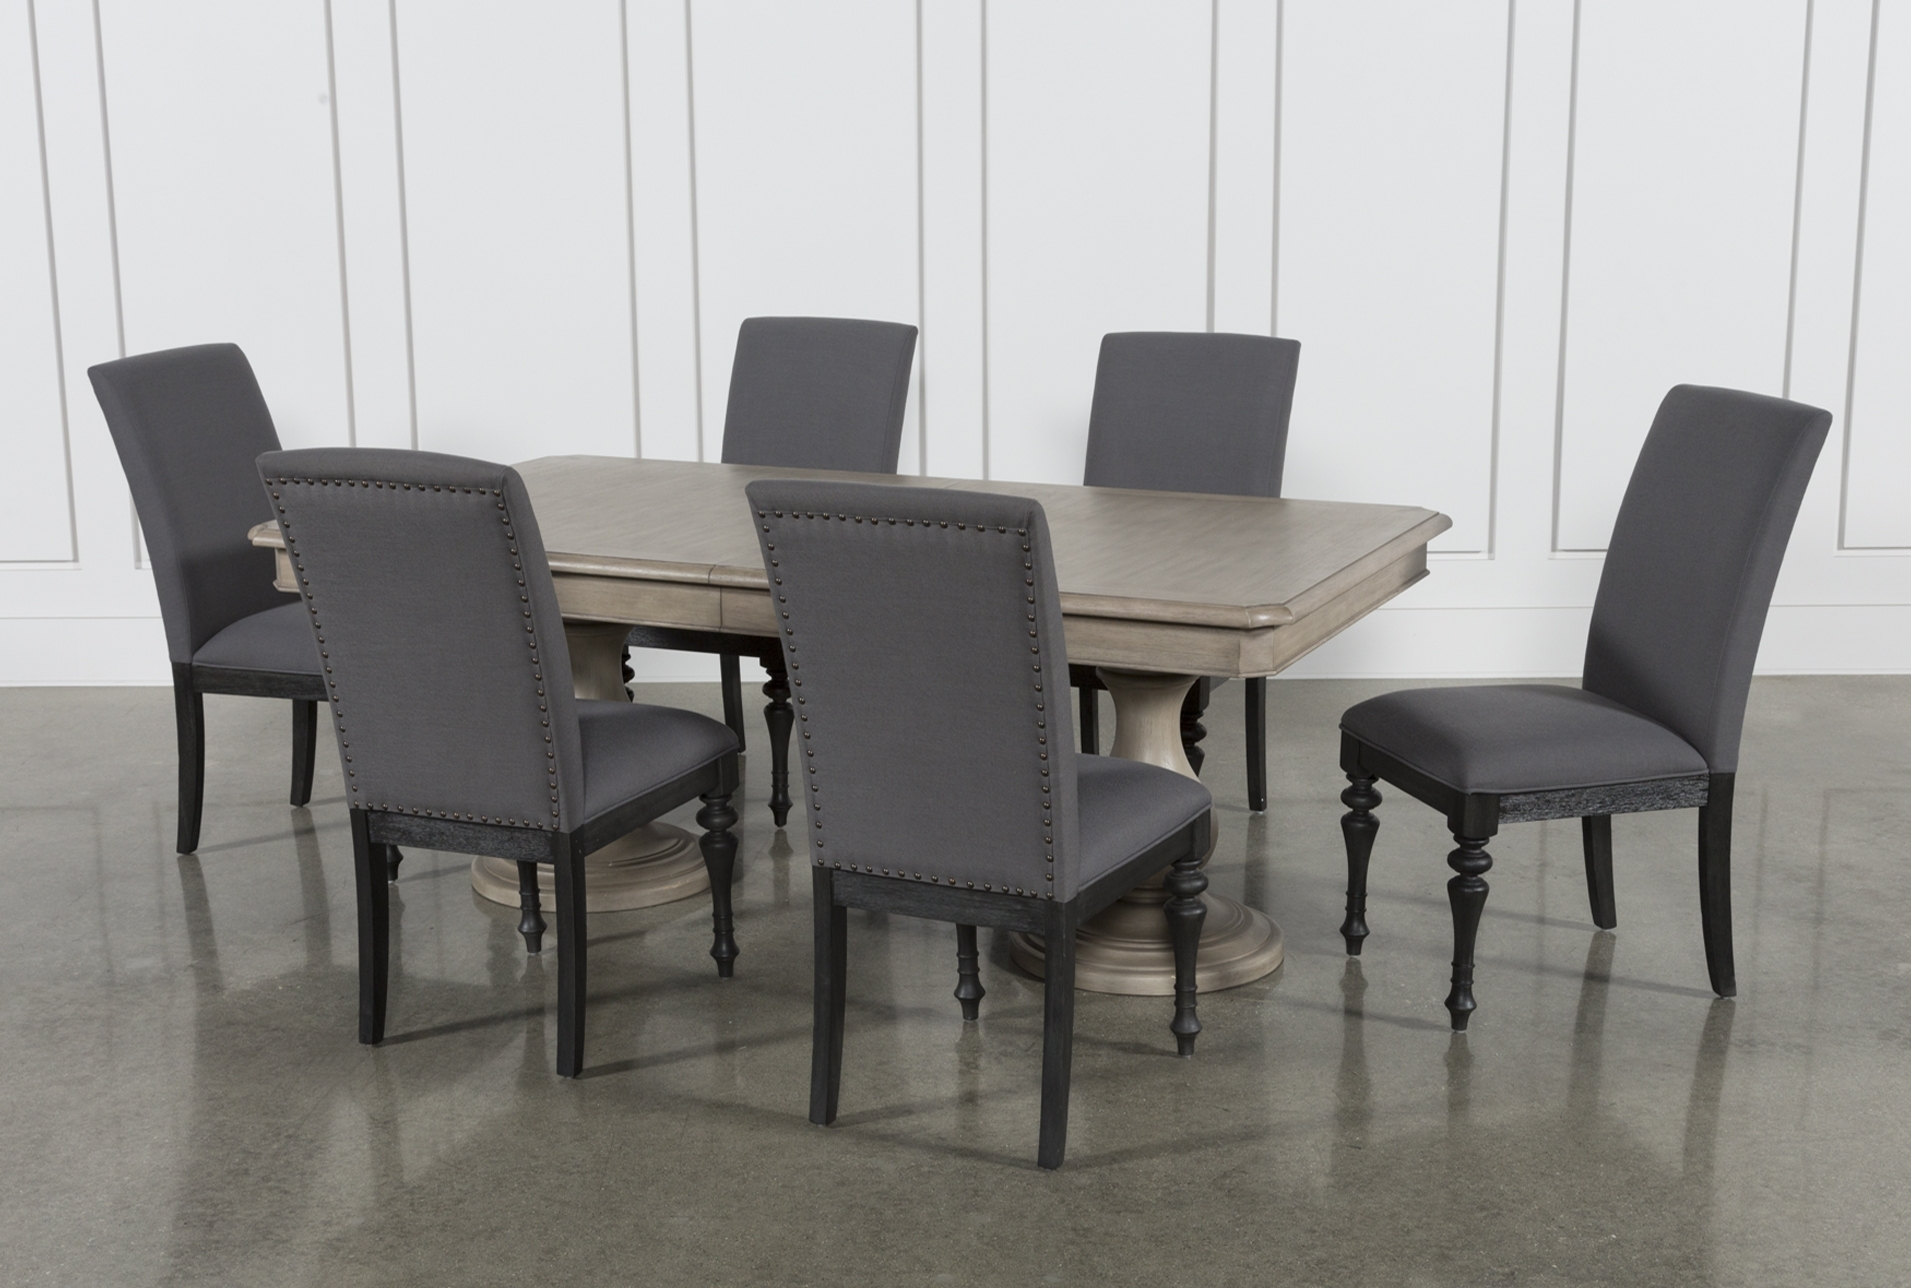 Recent Chapleau Ii 7 Piece Extension Dining Tables With Side Chairs Intended For Have To Have It (View 22 of 25)